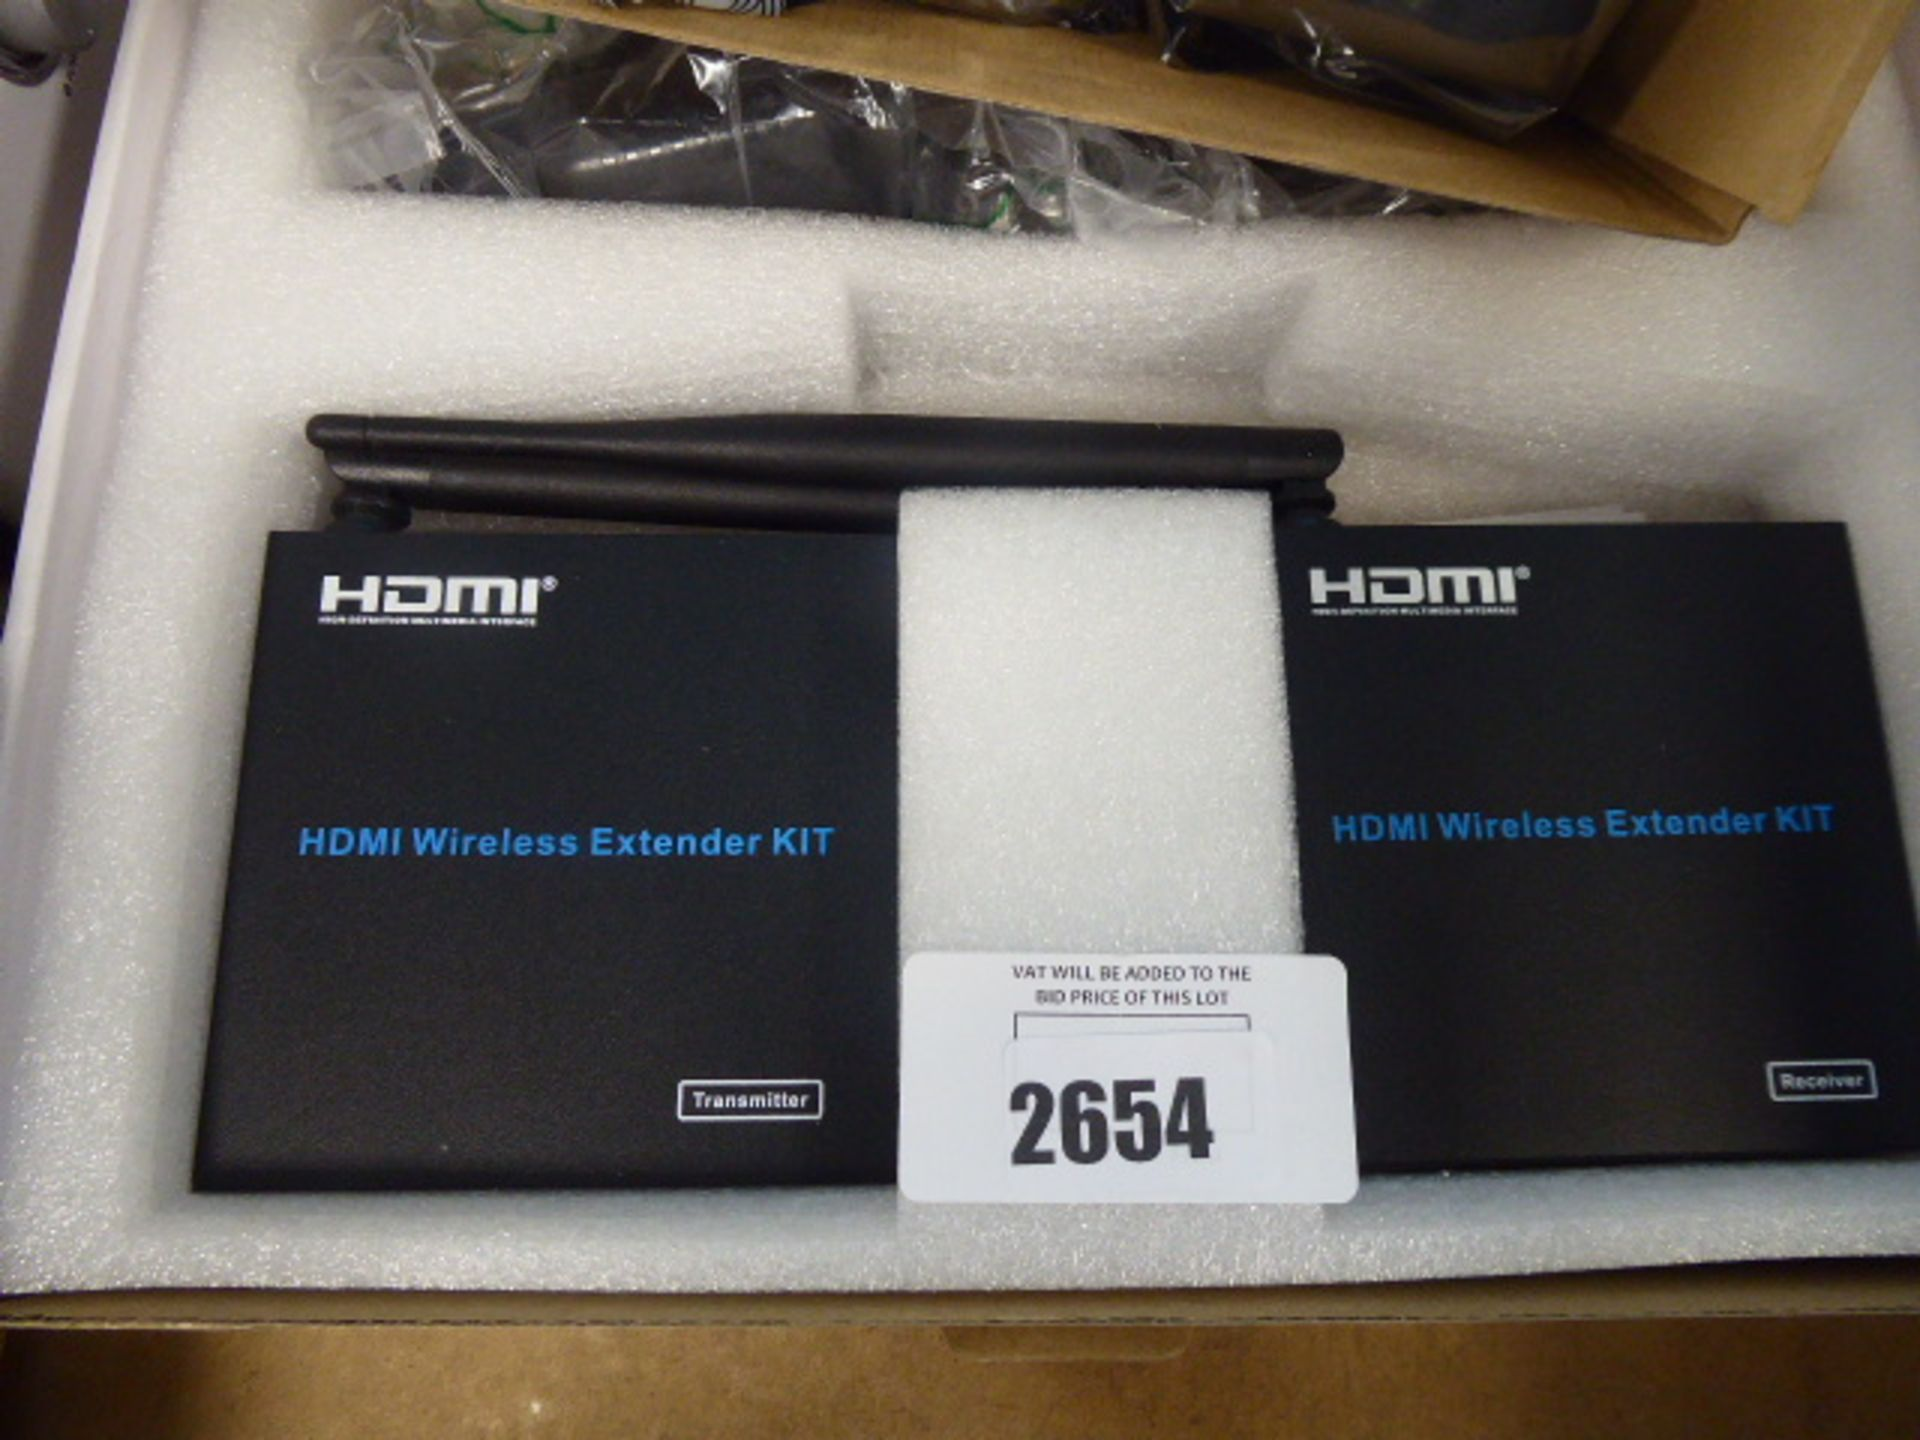 Pro signal HDMI RX receiver extender kit and an HDMI wireless extender kit in box - Image 2 of 3